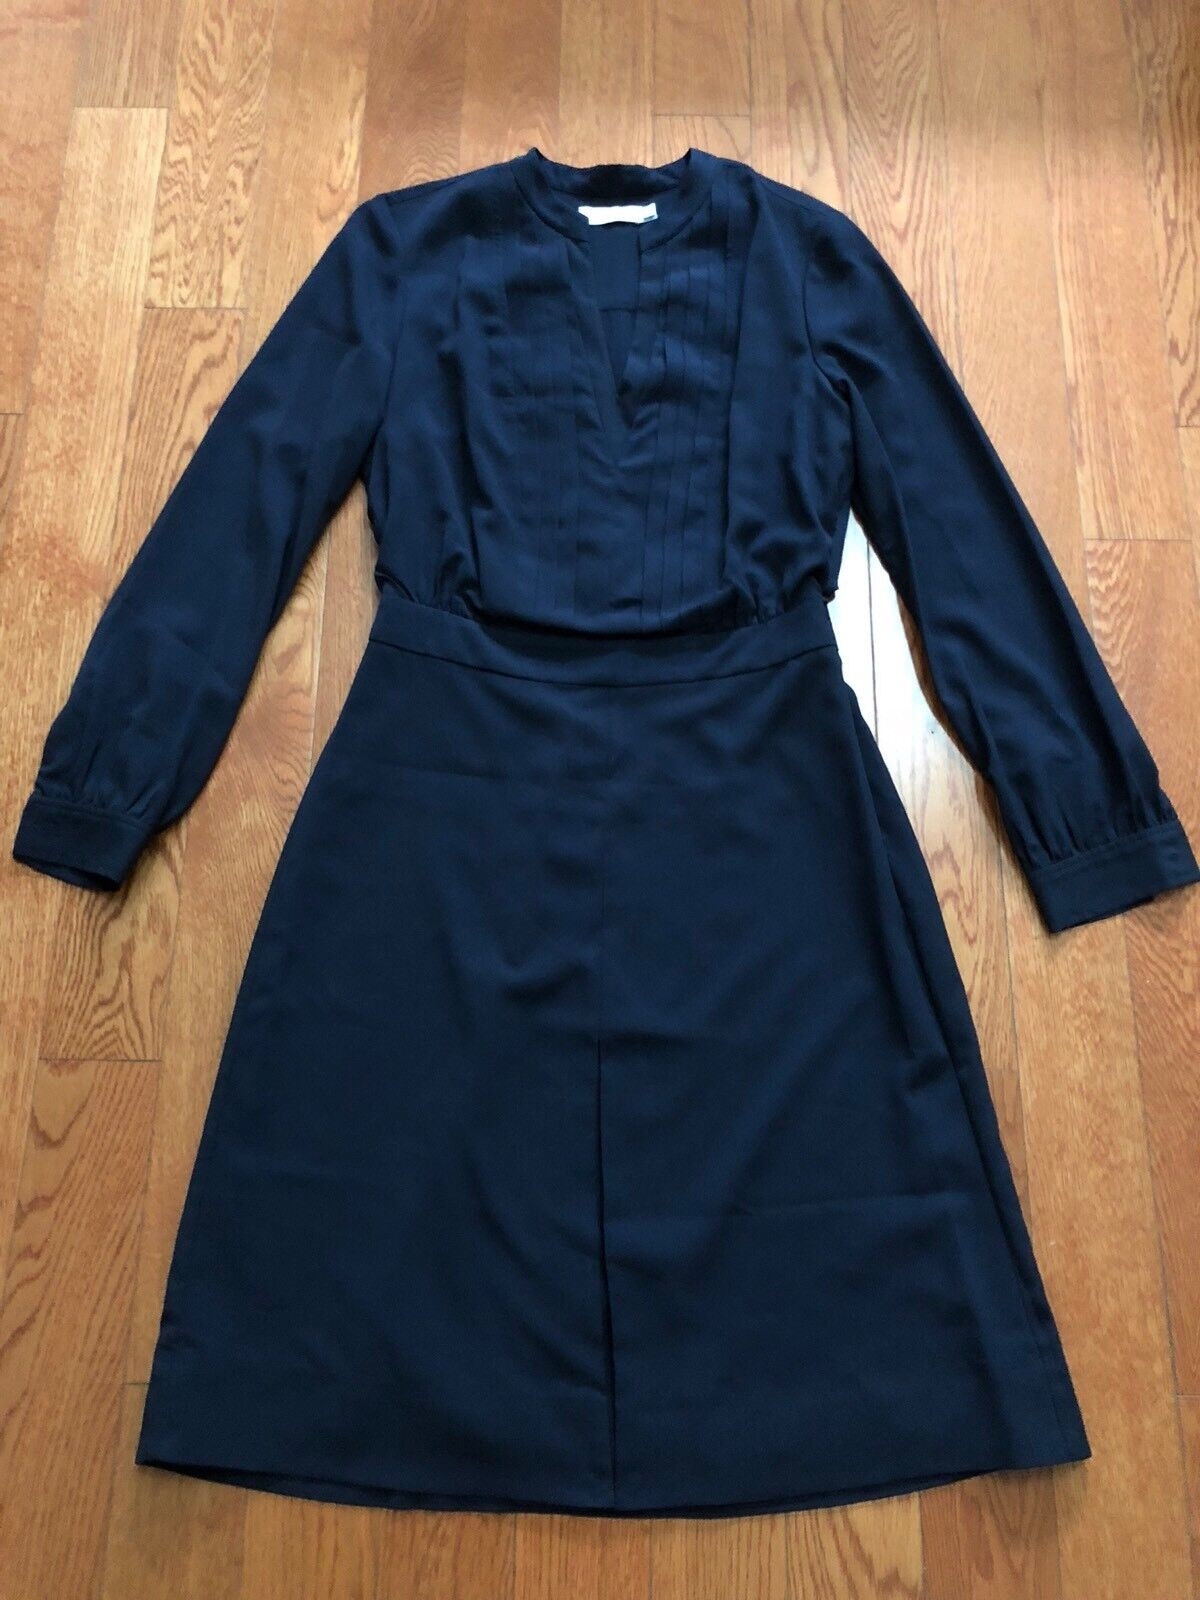 New Tory Burch Navy bluee Flowy Long Sleeve Pleated Blouse Dress